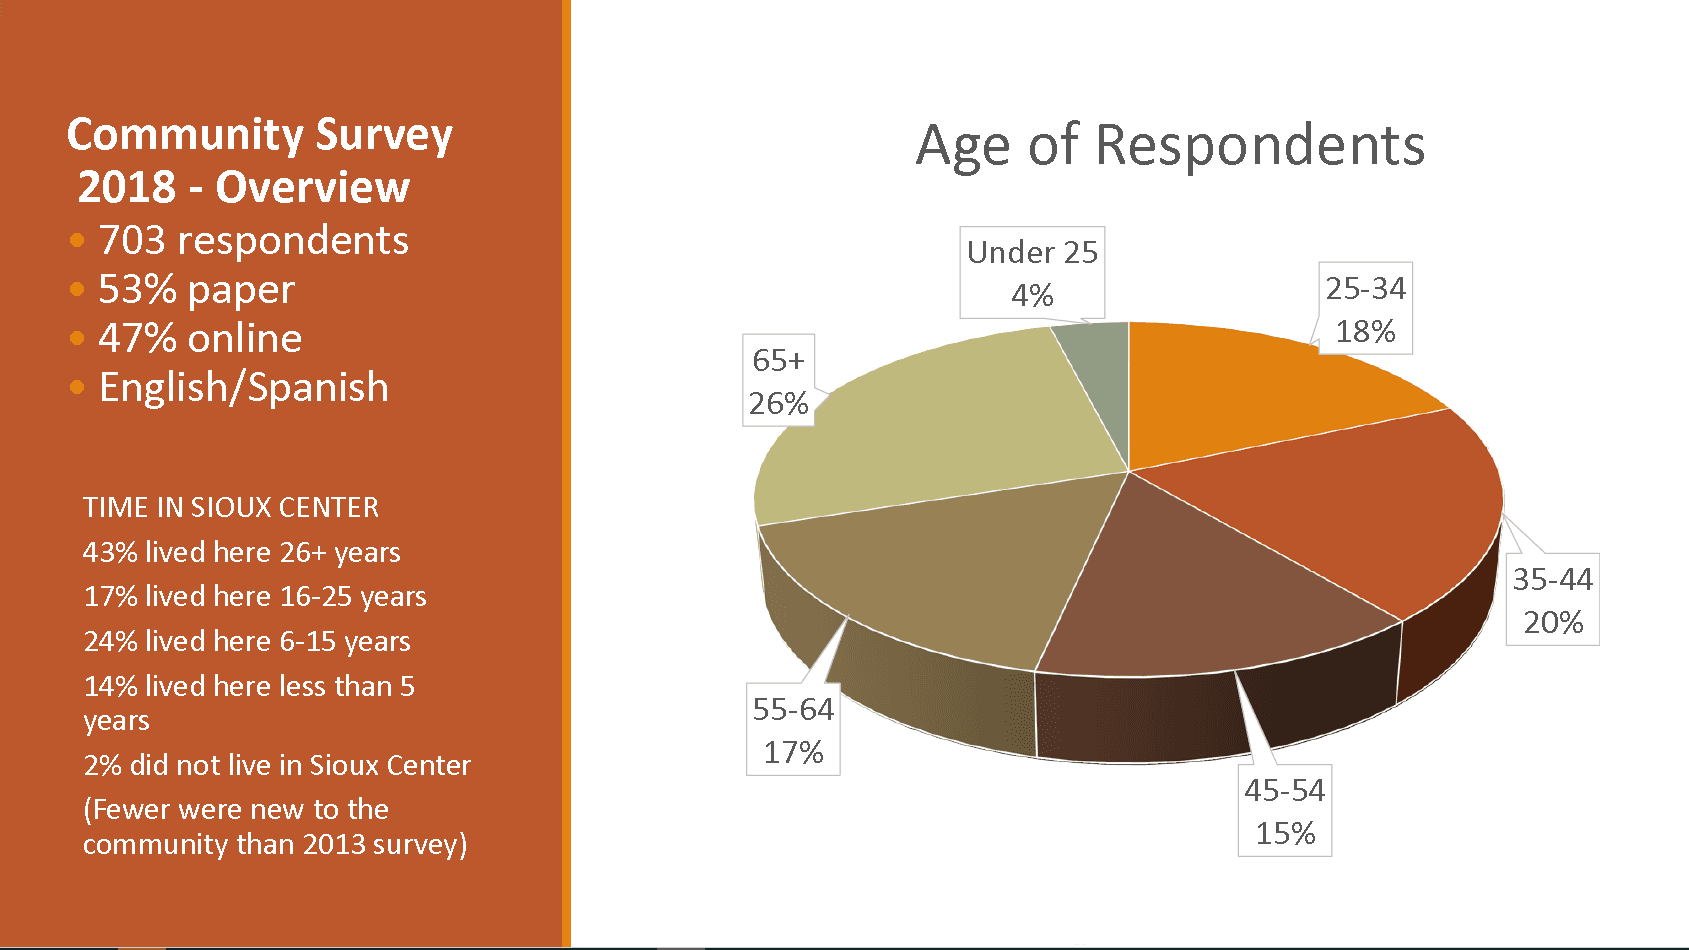 Comunity Survey respondents